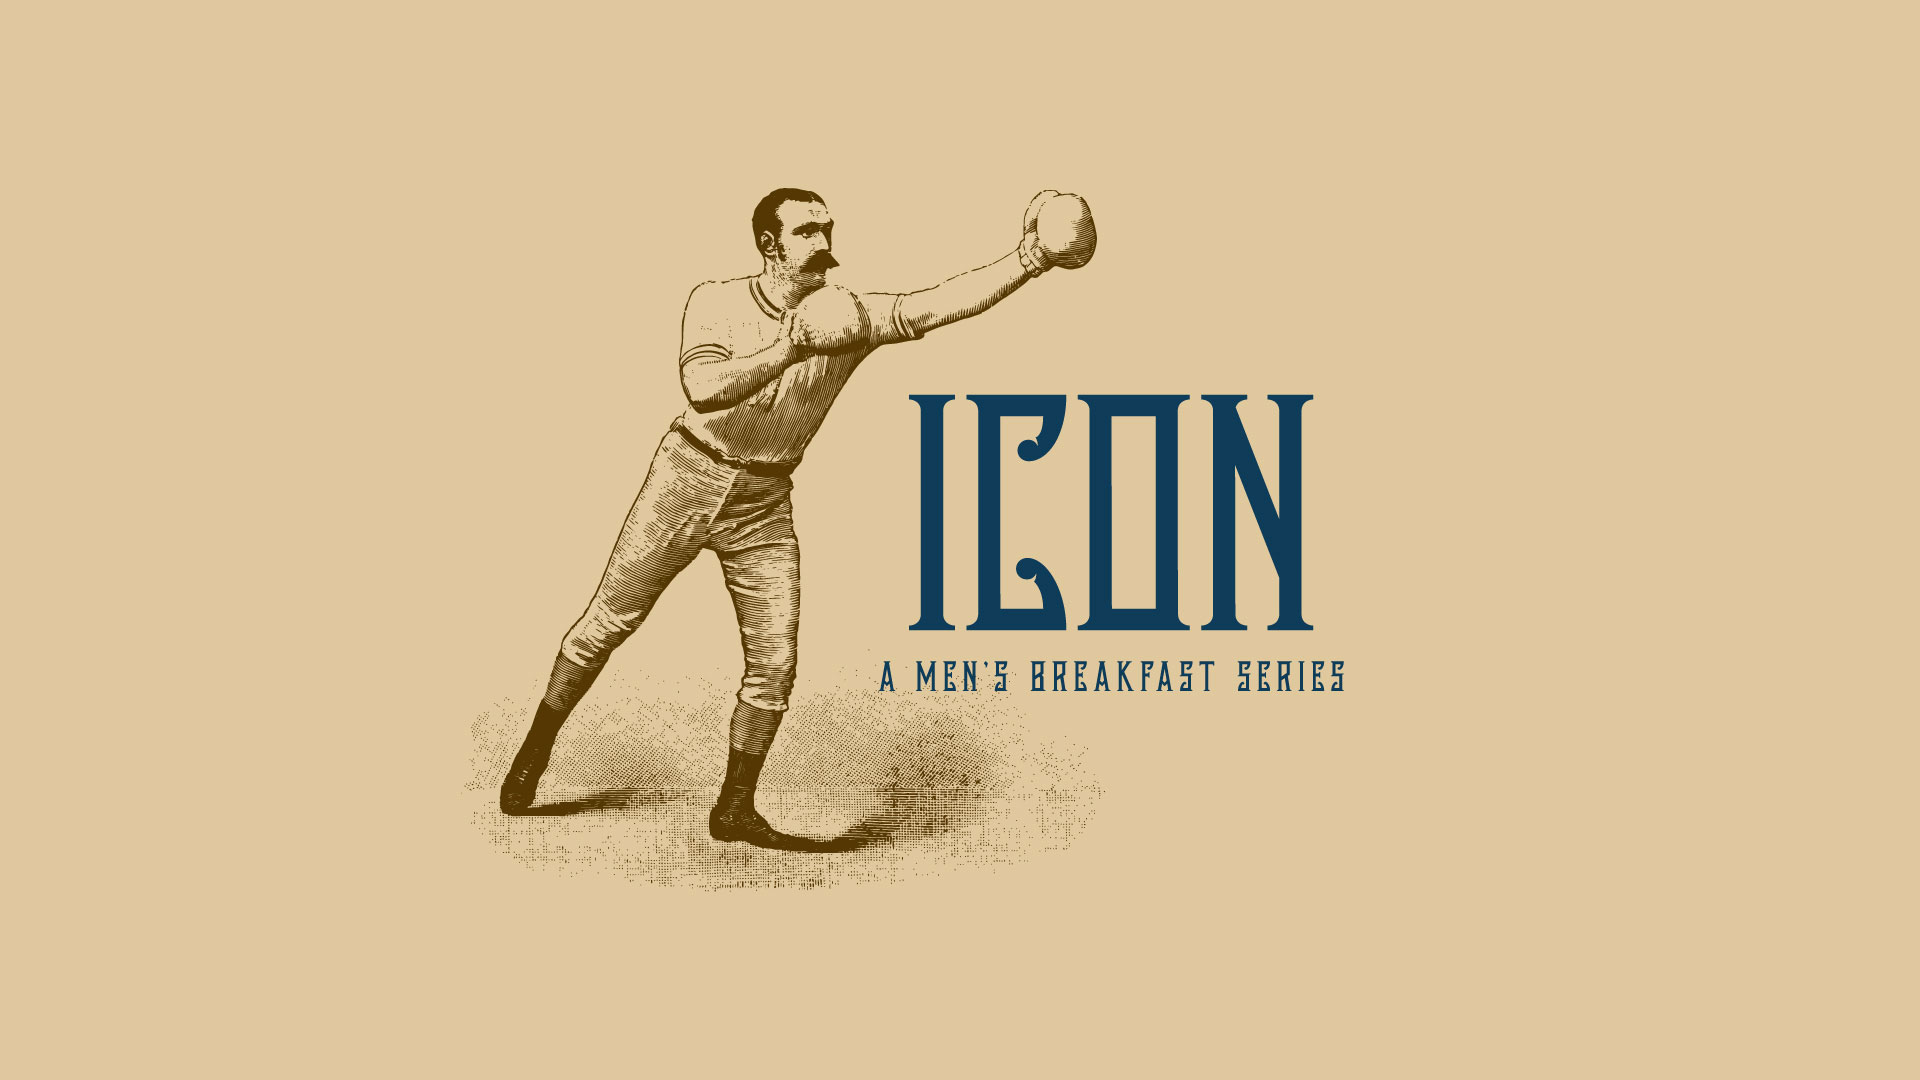 Series: Men's Breakfast Series: Icon